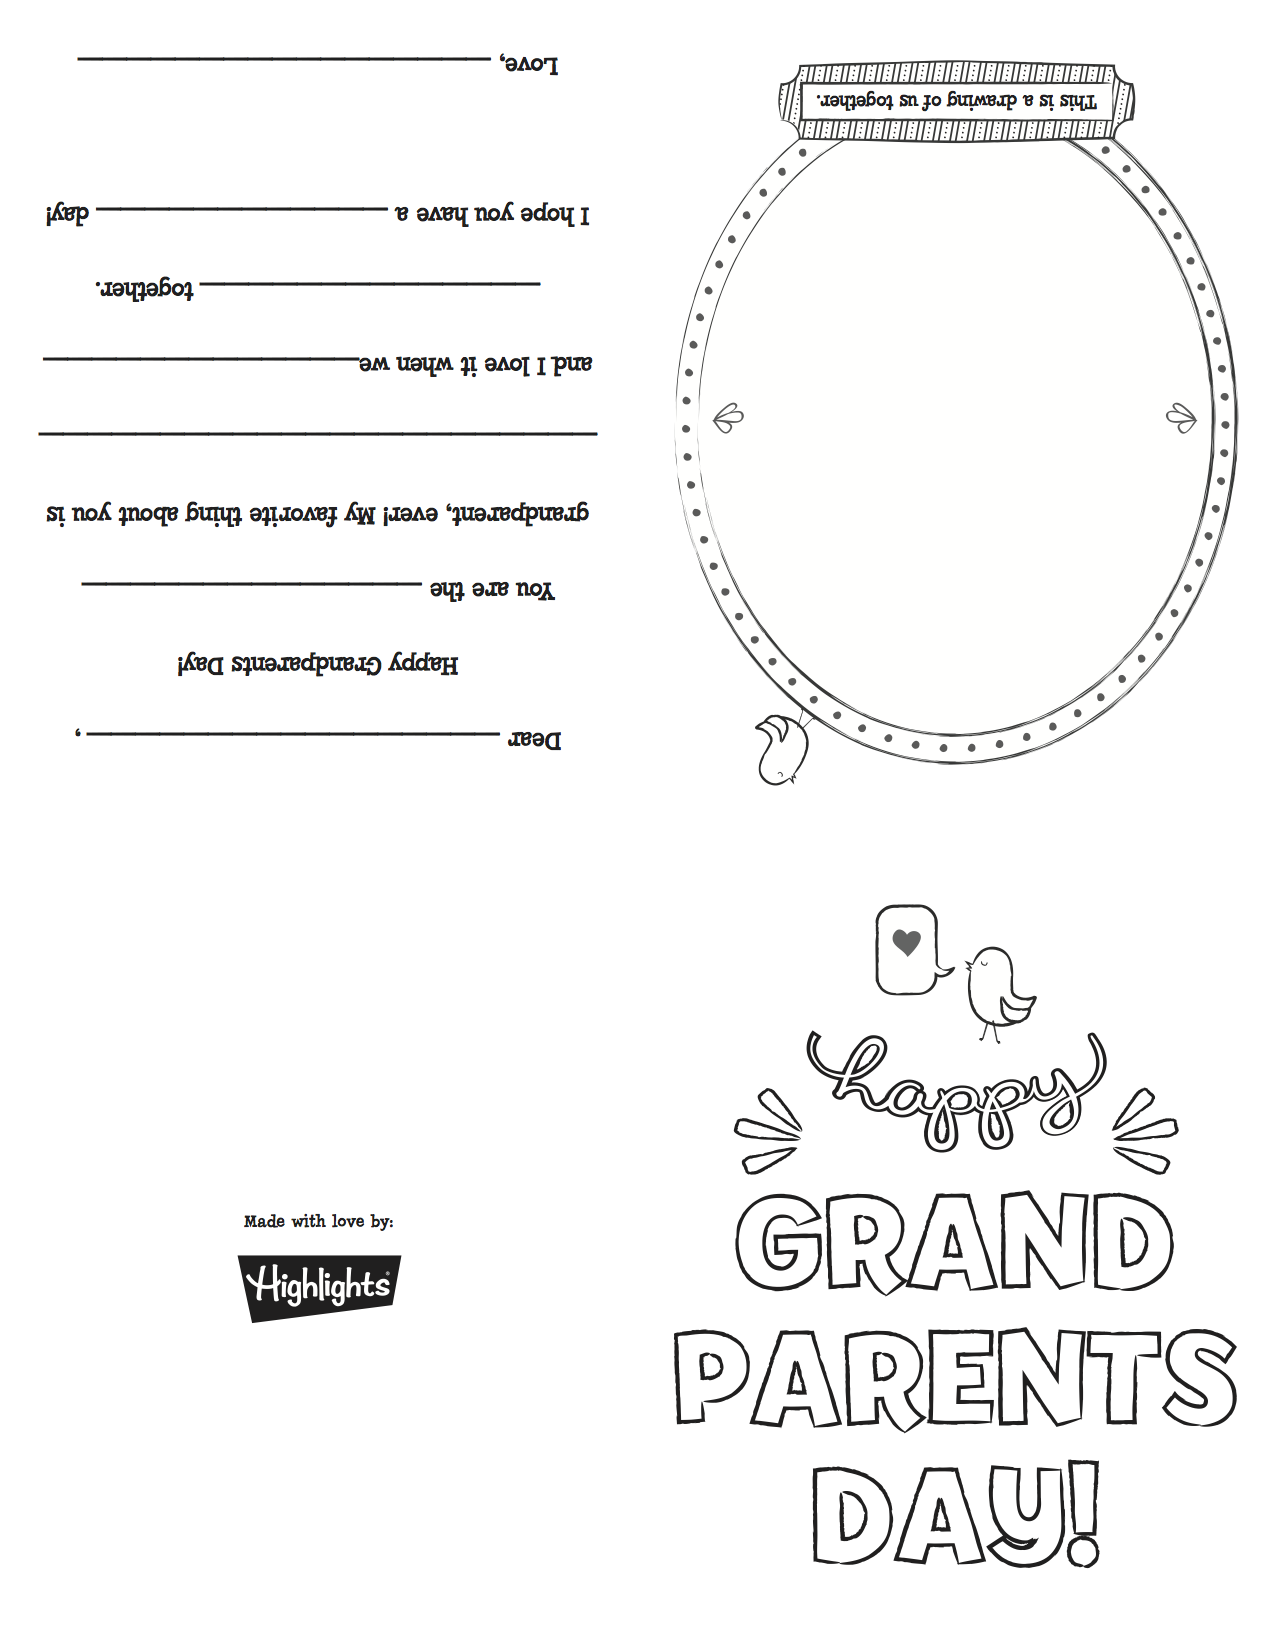 grandparentsdaycard copypng Grandparents Day